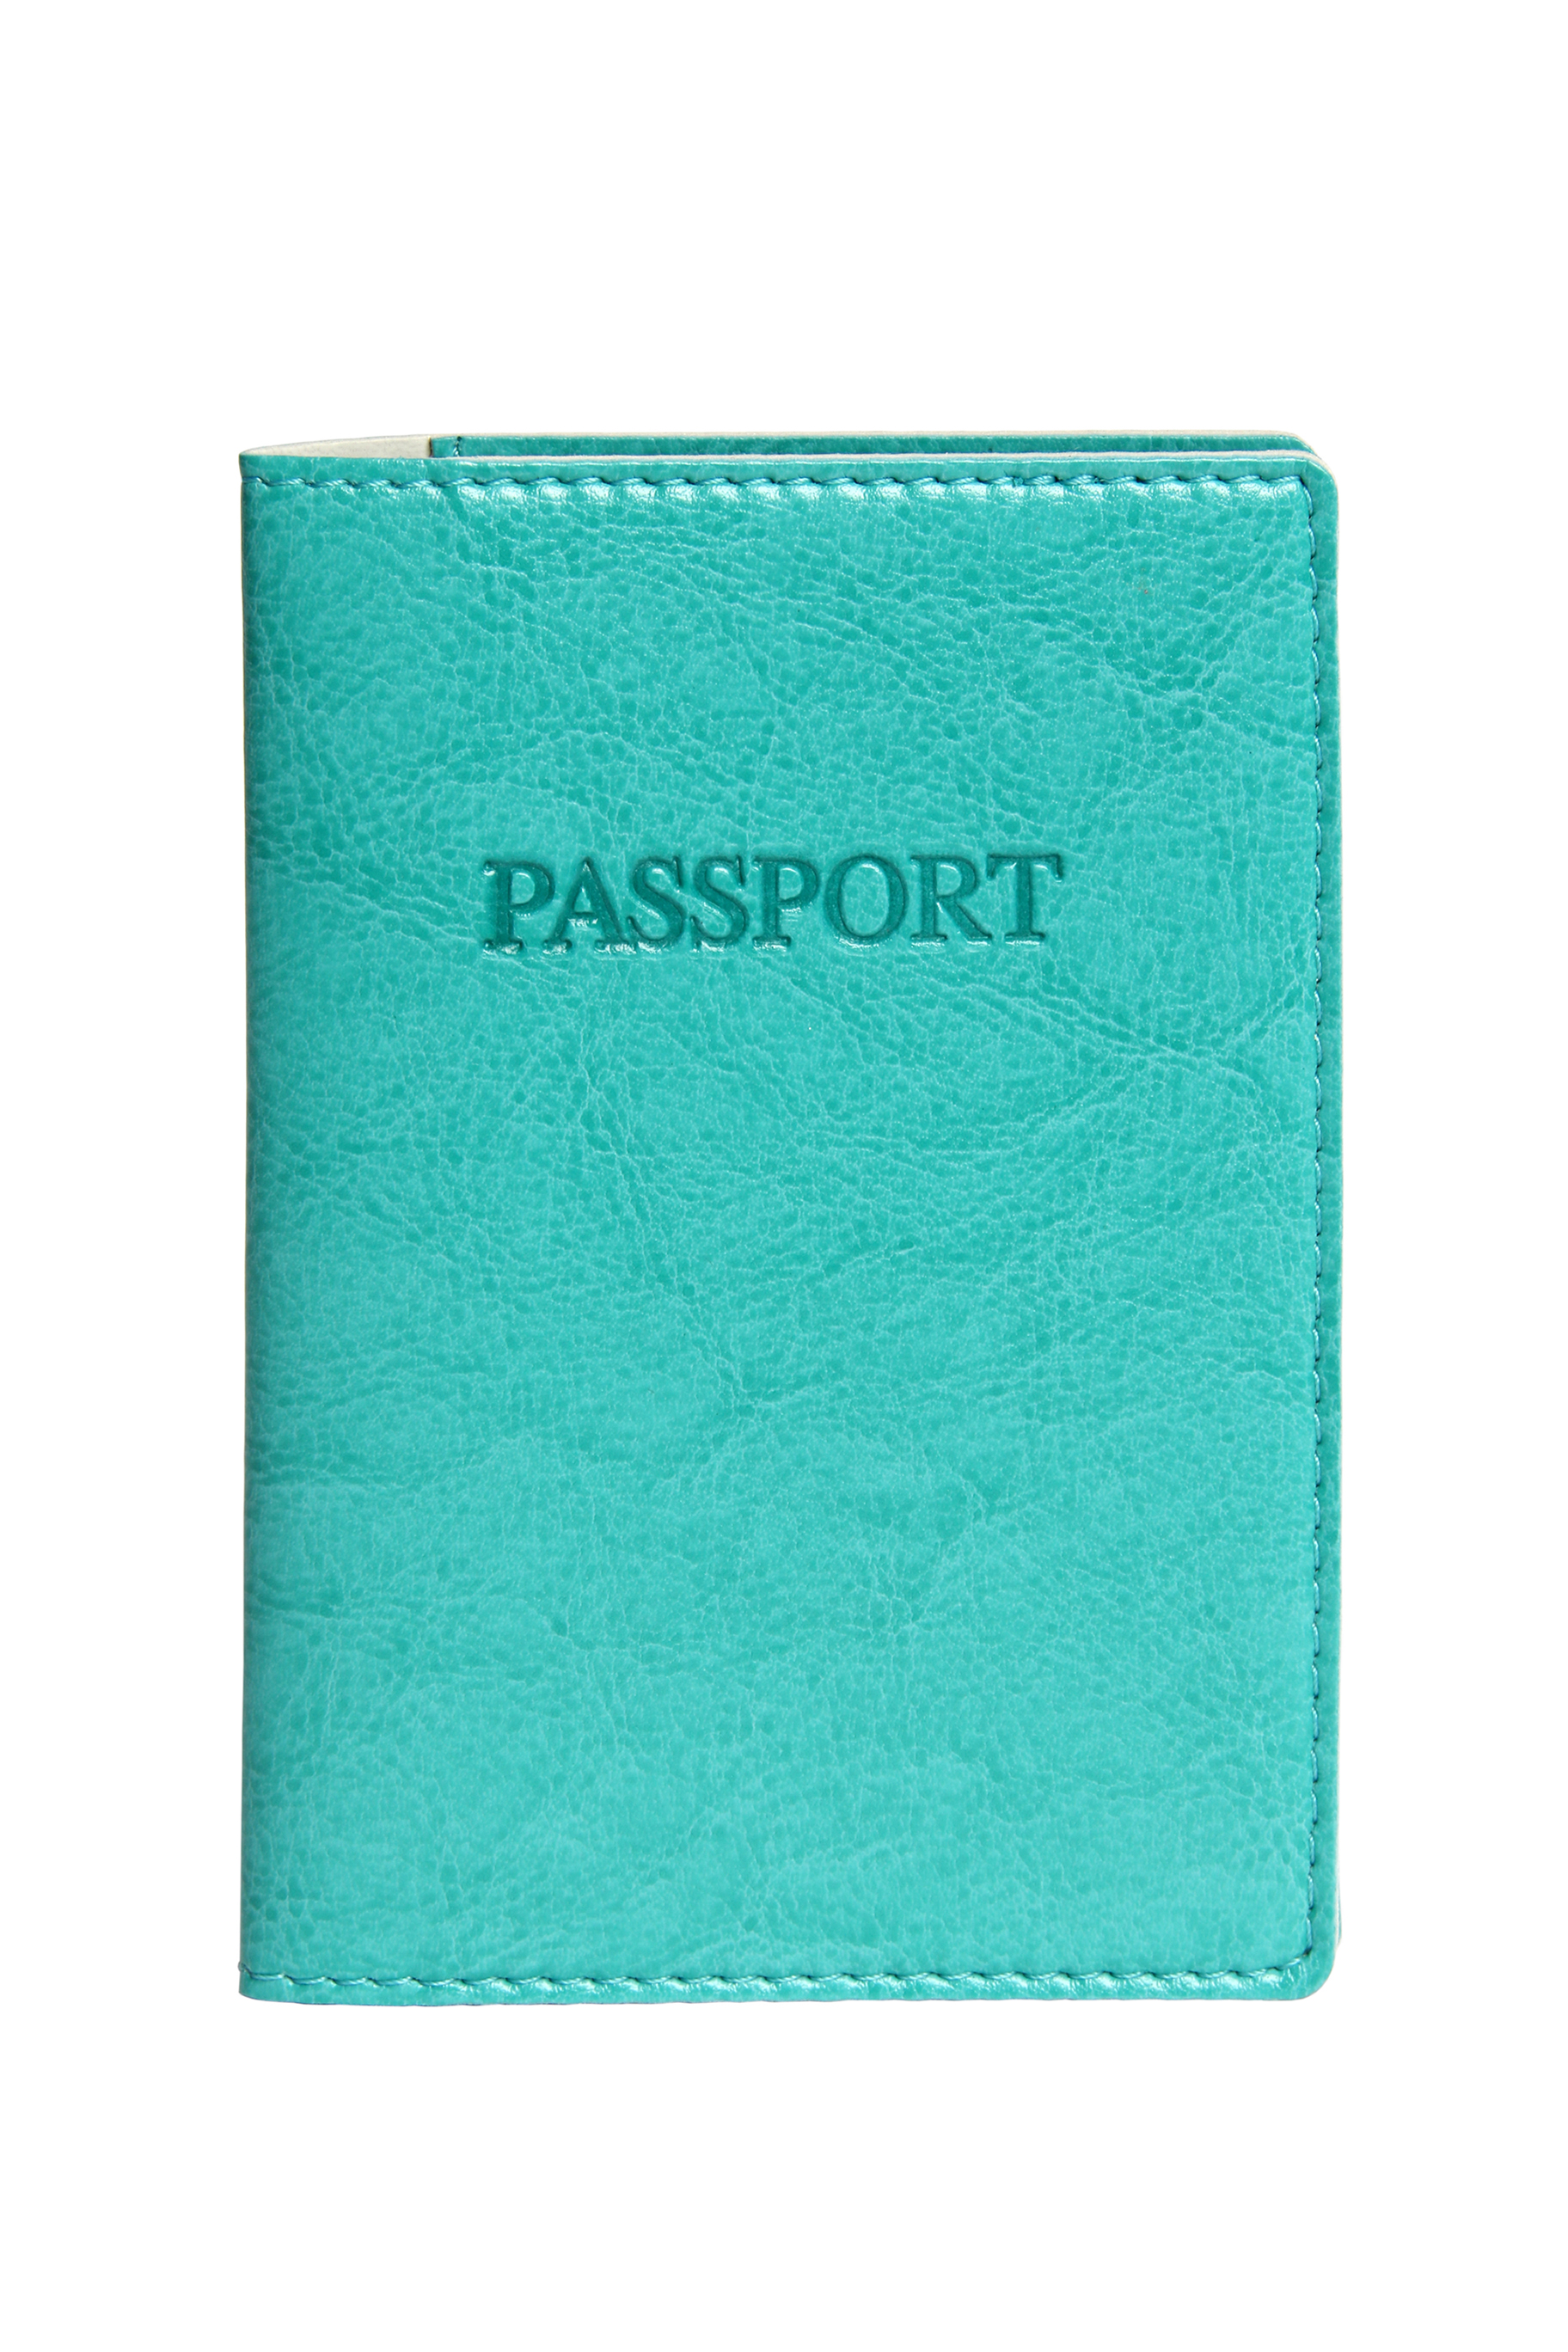 A4111-A - Bi-Color Passport Cover, AQUA w/Dove Grey Lining